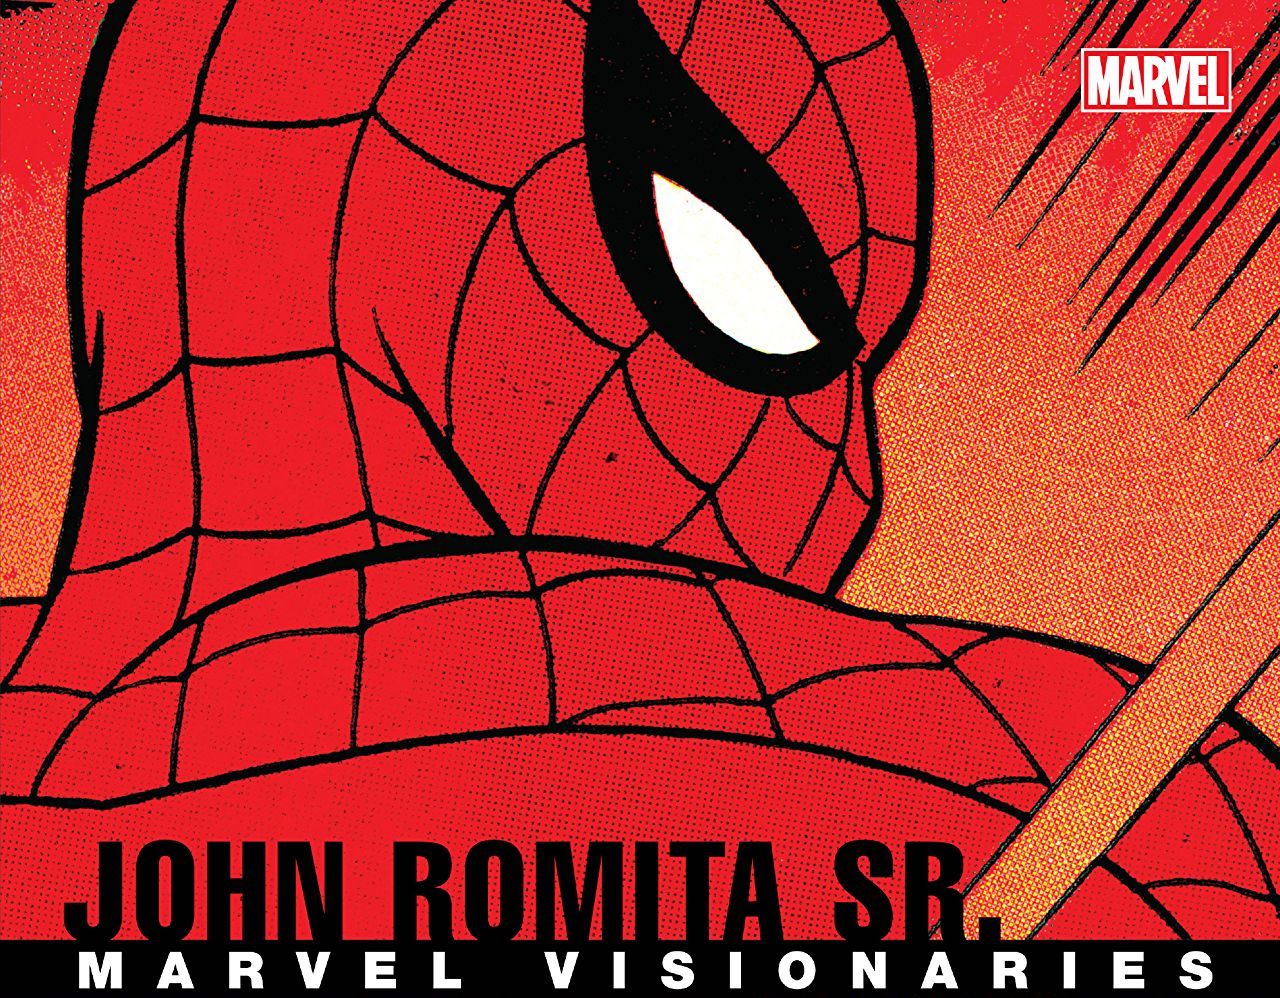 Marvel Visionaries: John Romita Sr. Review